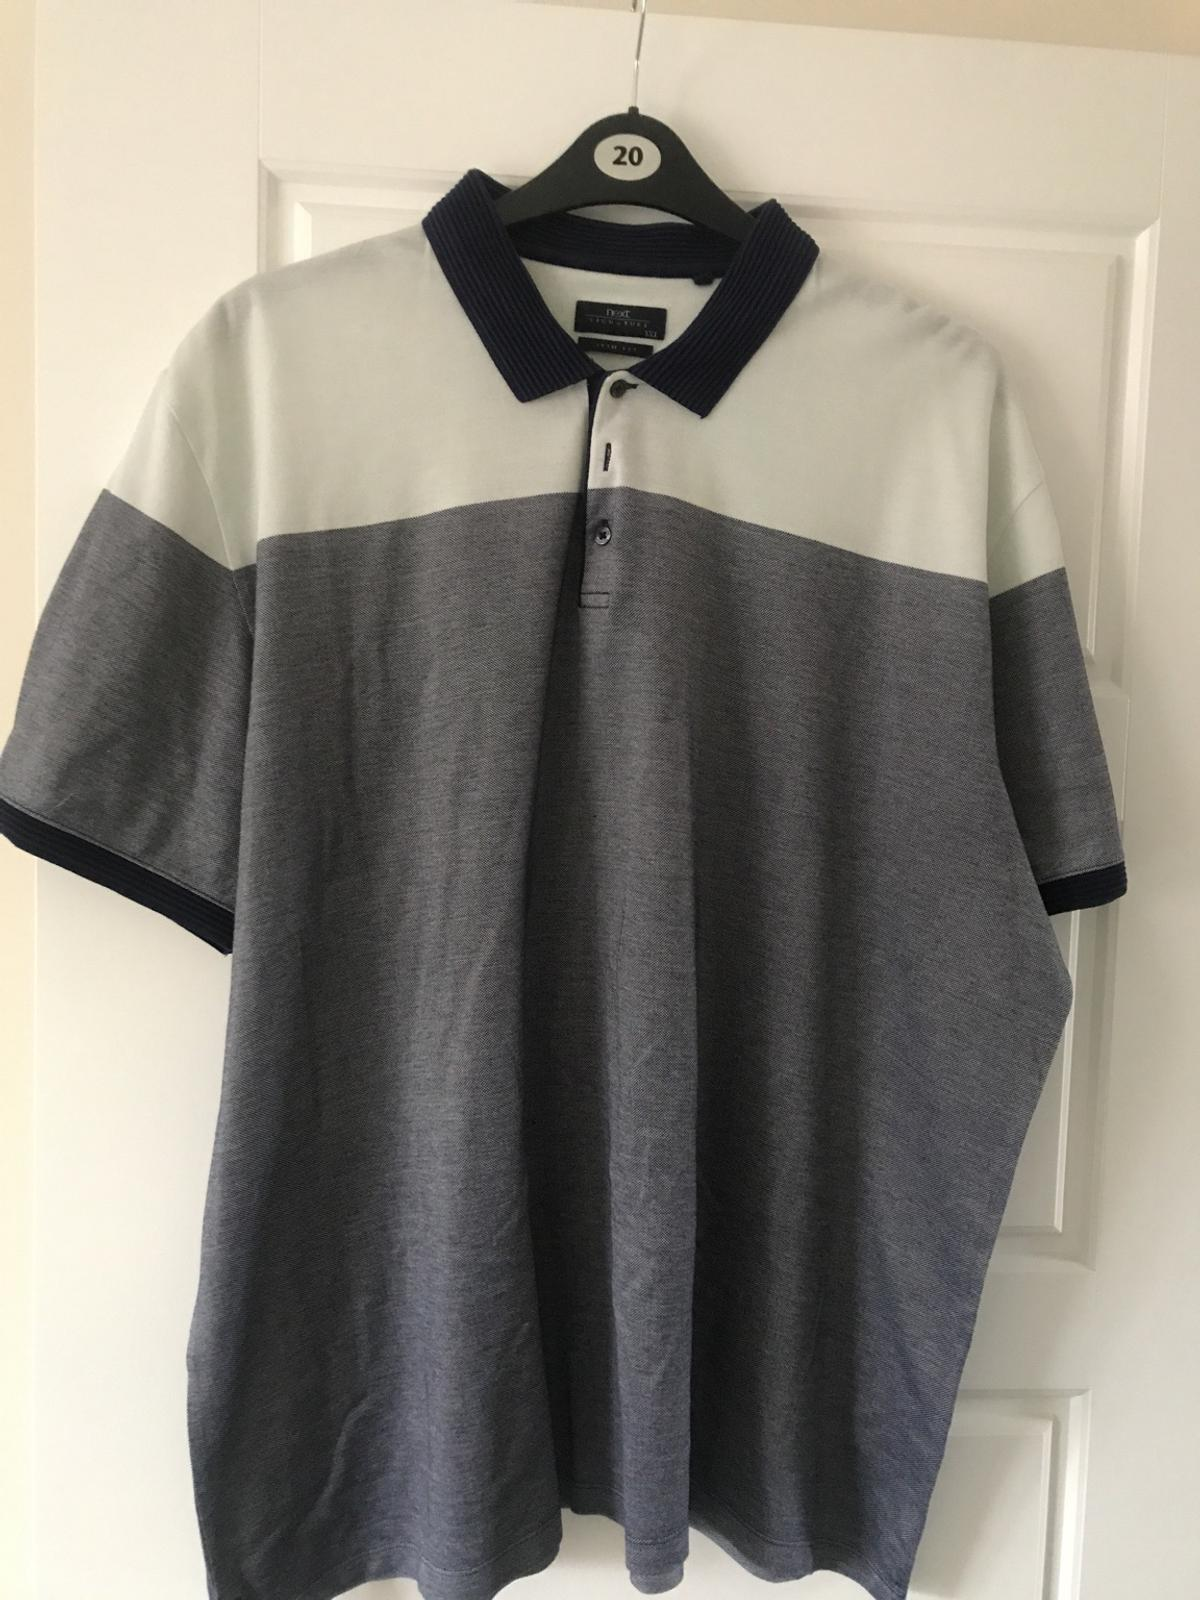 Men's polo T-shirt size xxxl from Next signature range. Slim fit. Worn and washed but in great condition with plenty more wear in it. From a smoke and pet free home. Check out my page for many other listings.